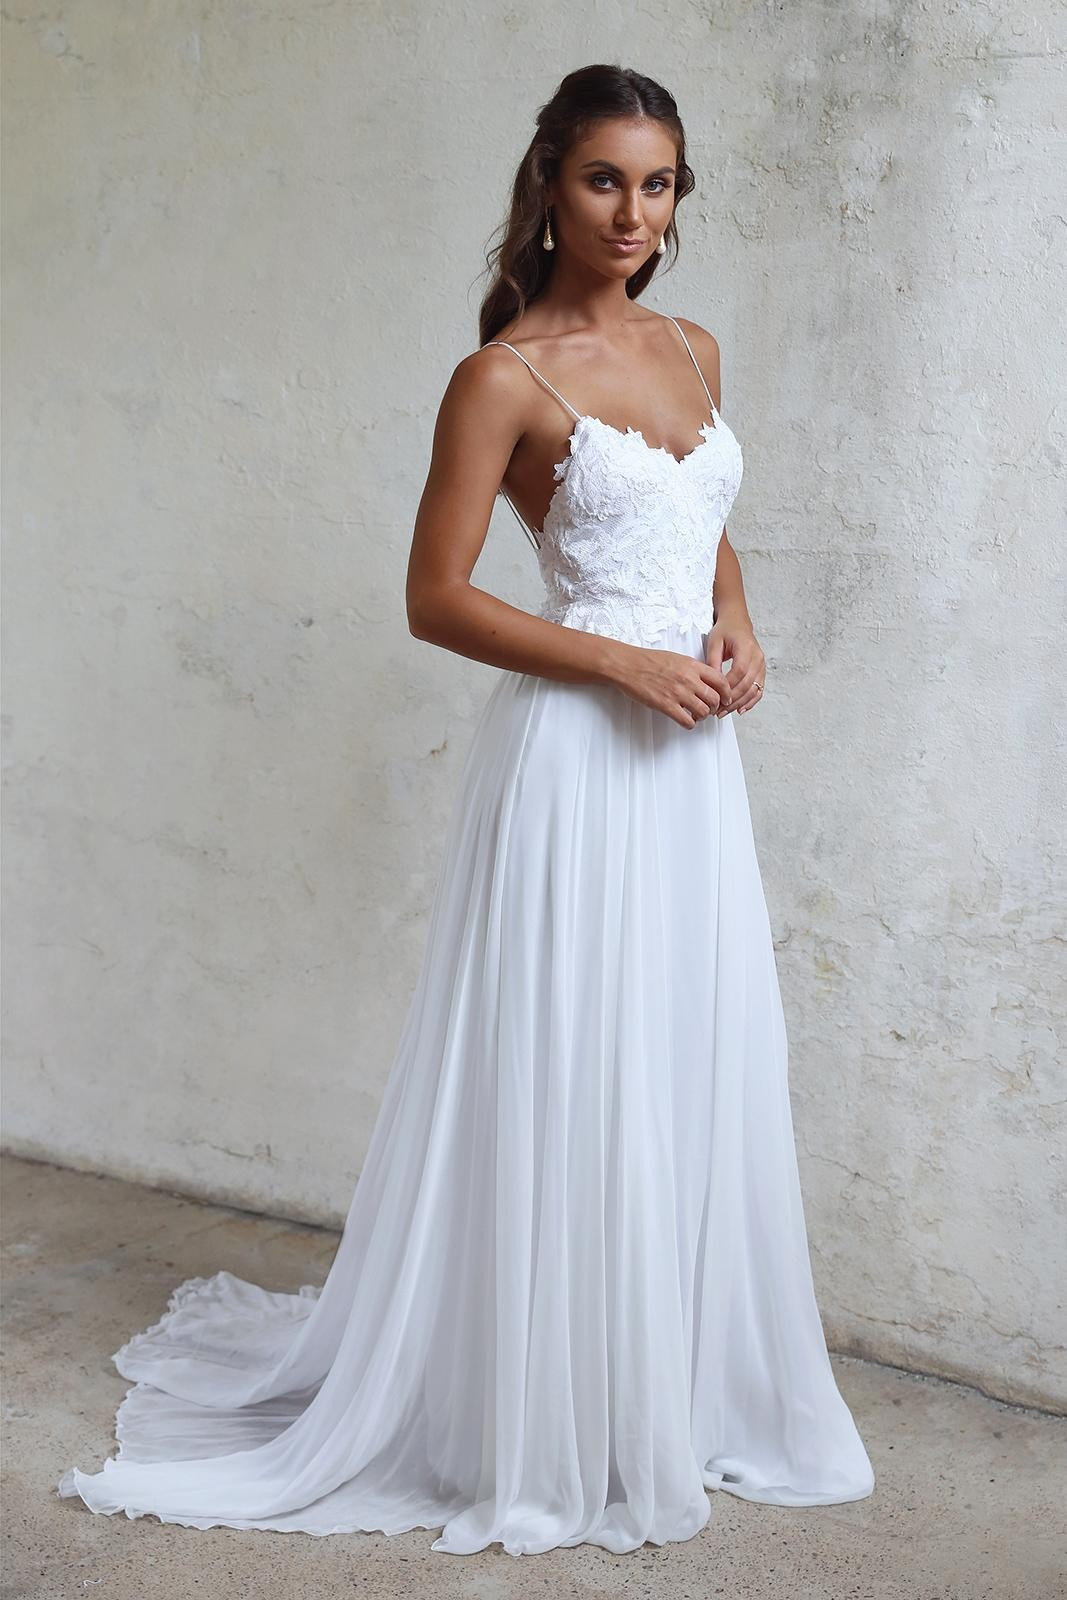 Wedding Dress with Spaghetti Straps the 20 Best Ideas for Simple A Line Spaghetti Straps Open Back Summer Wedding Dress